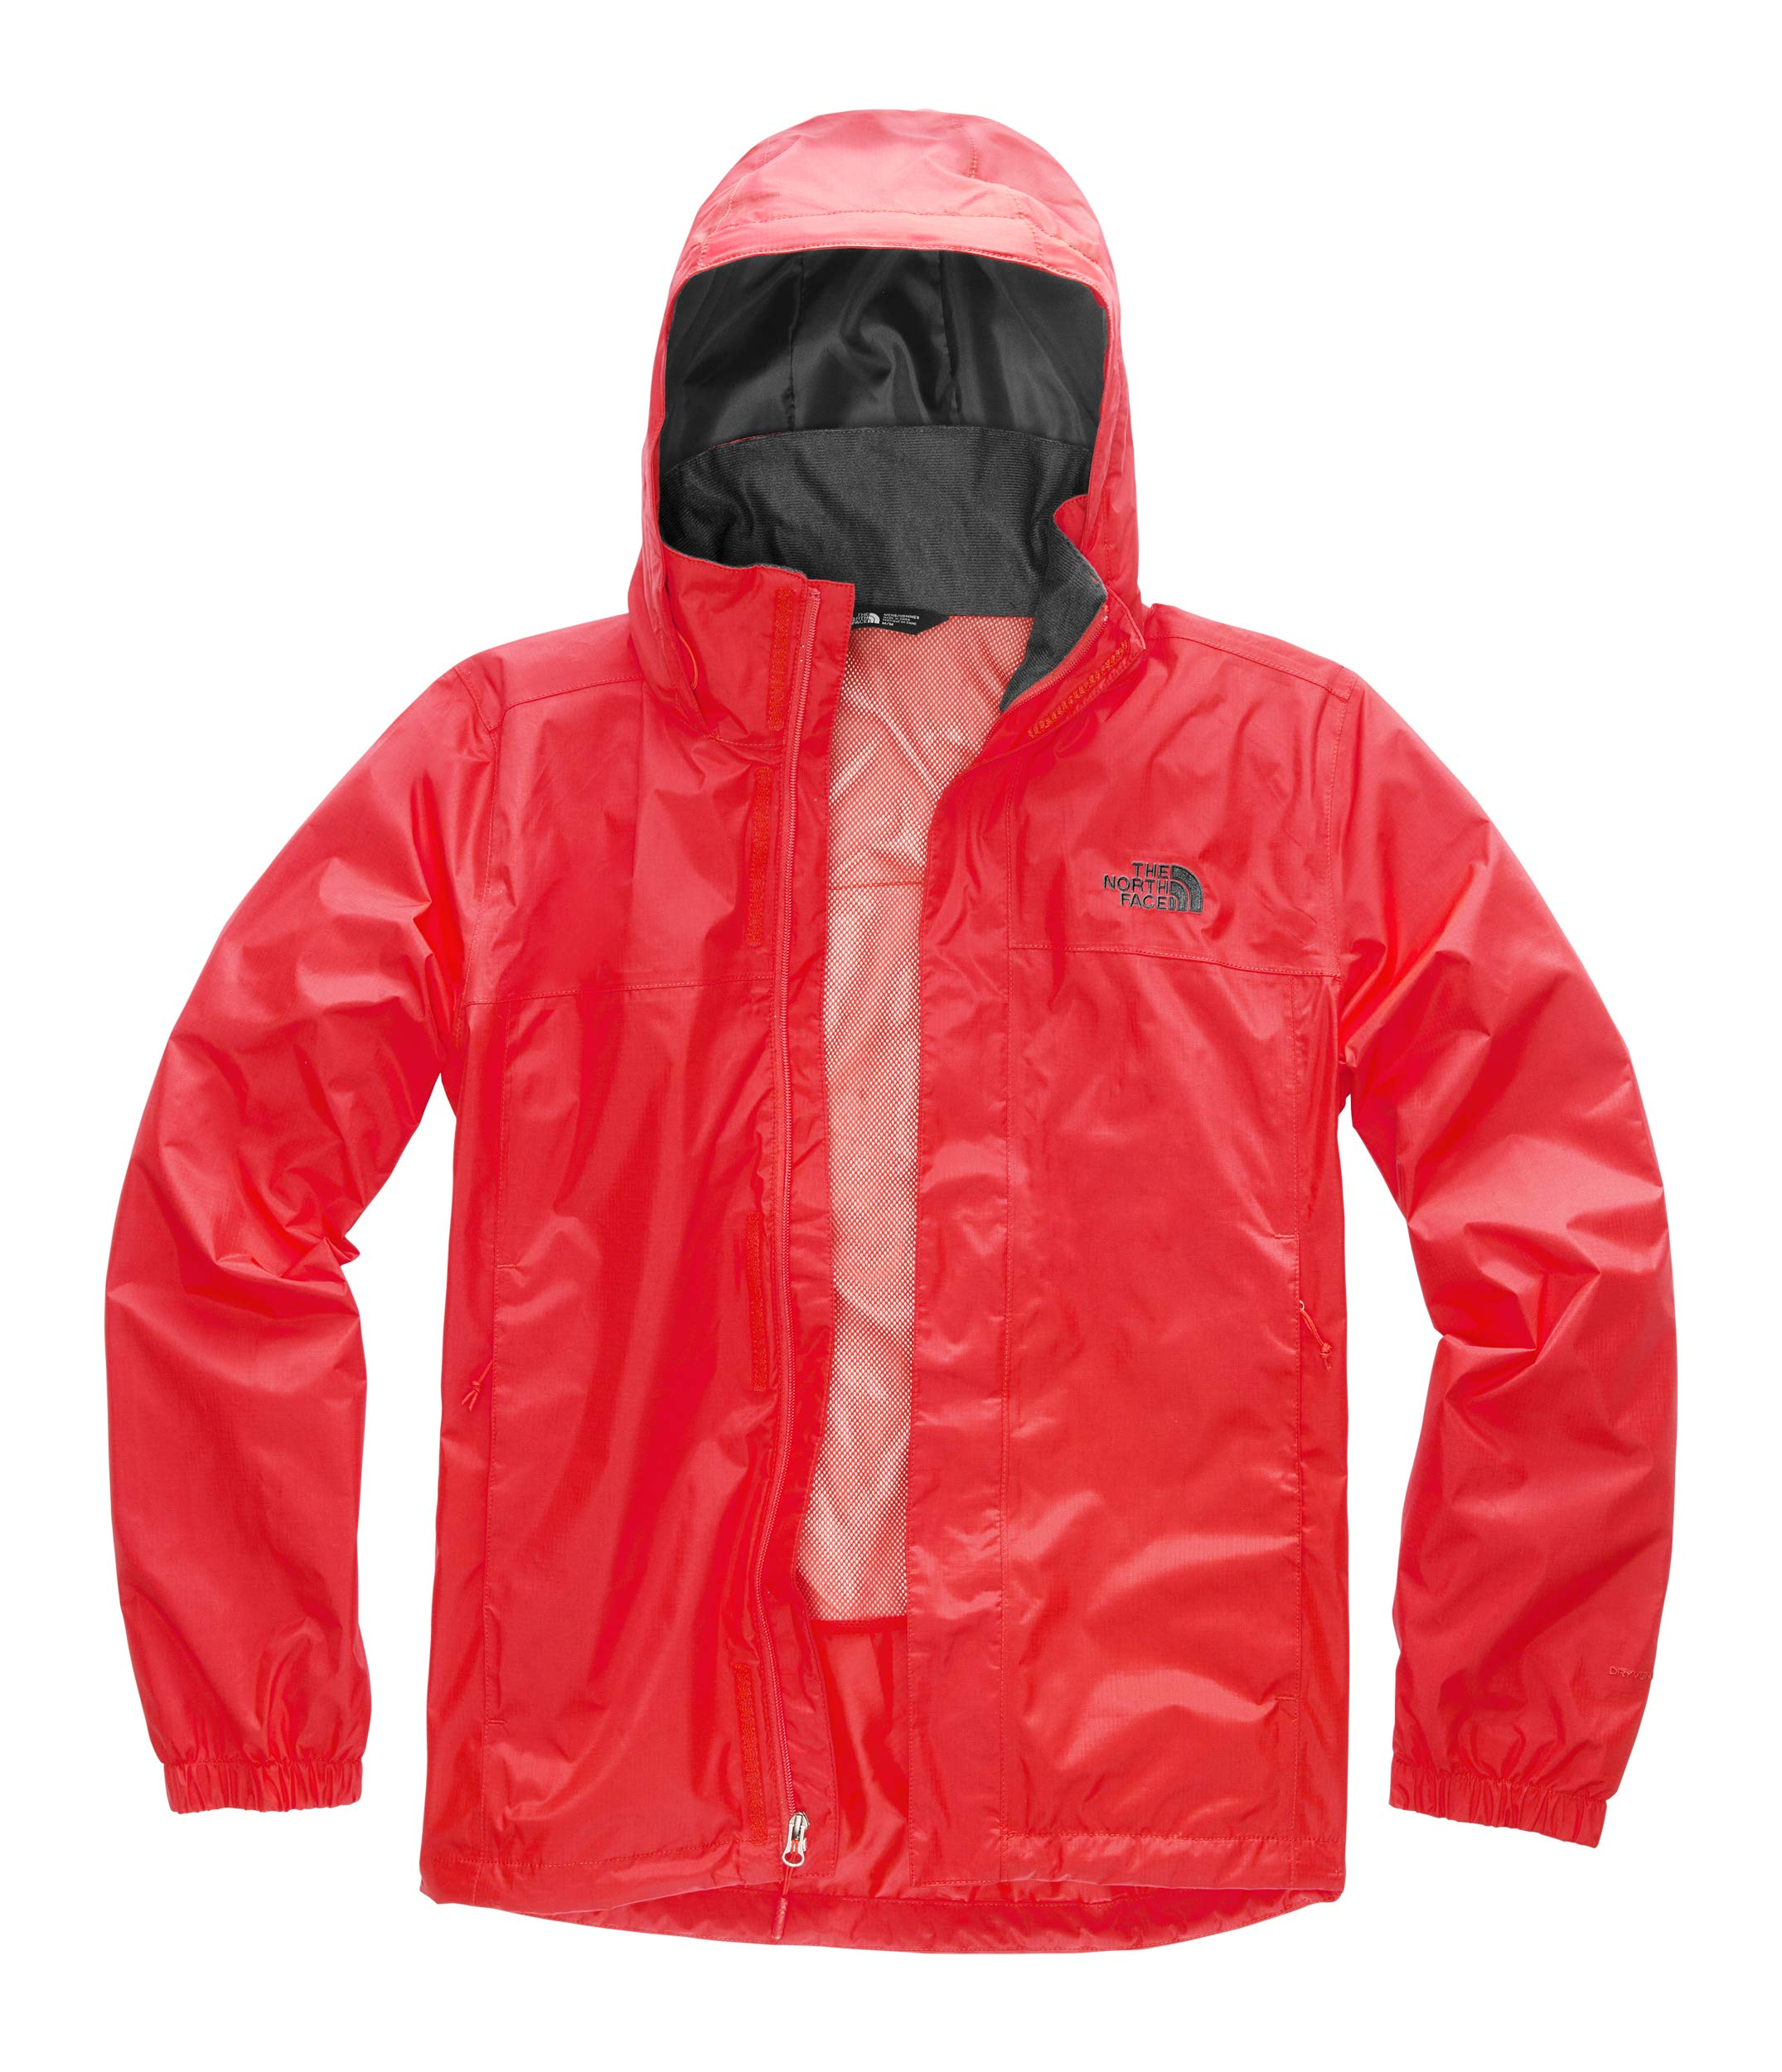 The North Face Men's Resolve 2 Jacket Fiery Red/Asphalt Grey Small